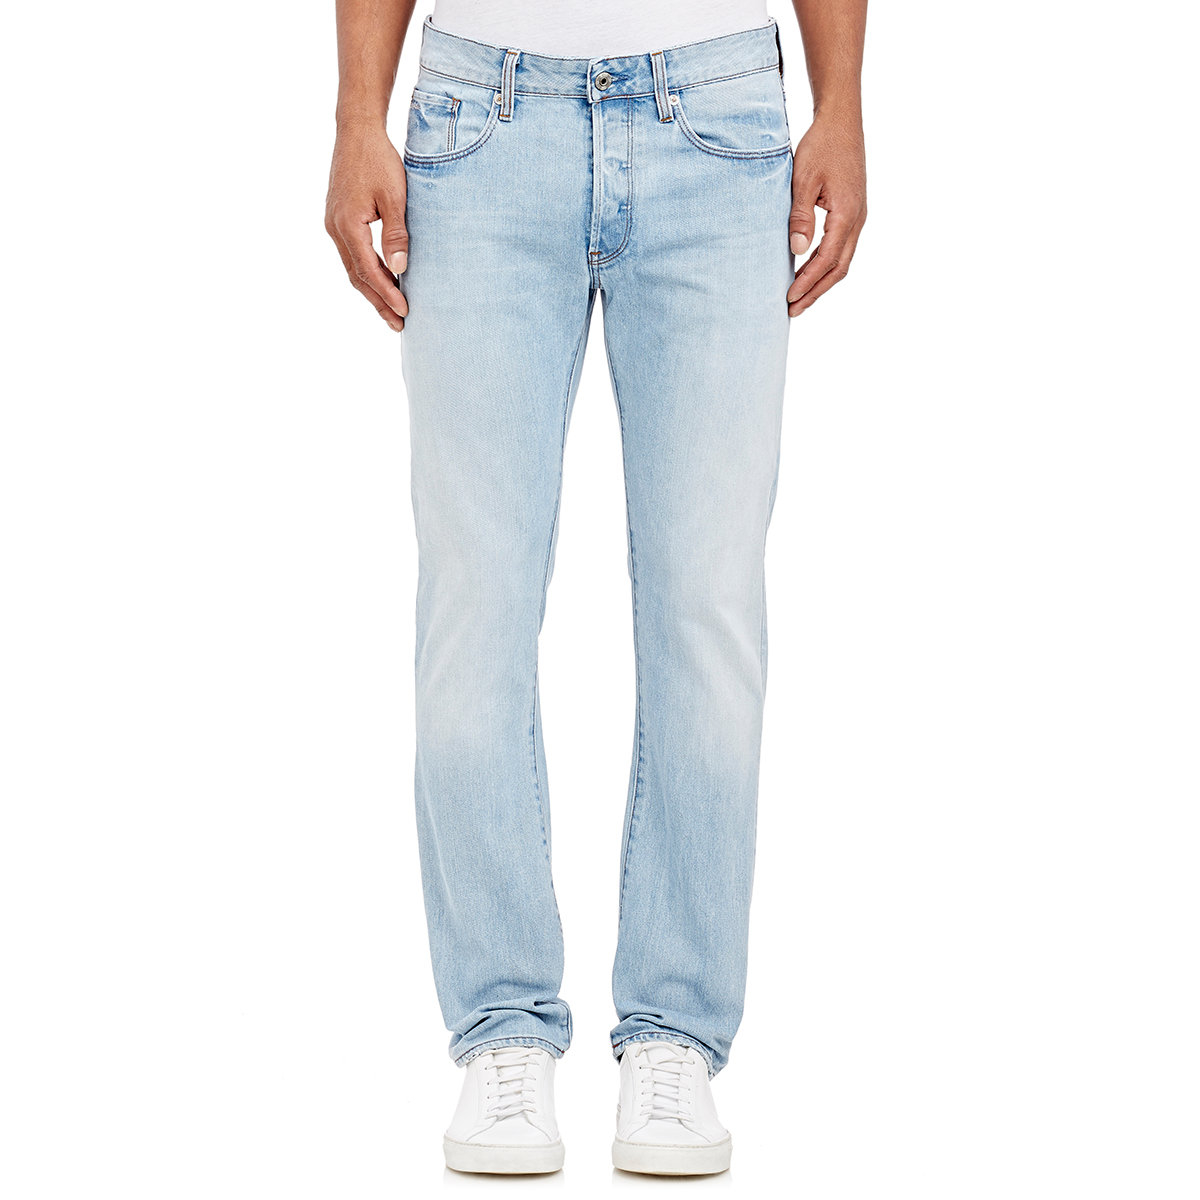 g star raw 3301 slim straight jeans in blue for men lyst. Black Bedroom Furniture Sets. Home Design Ideas